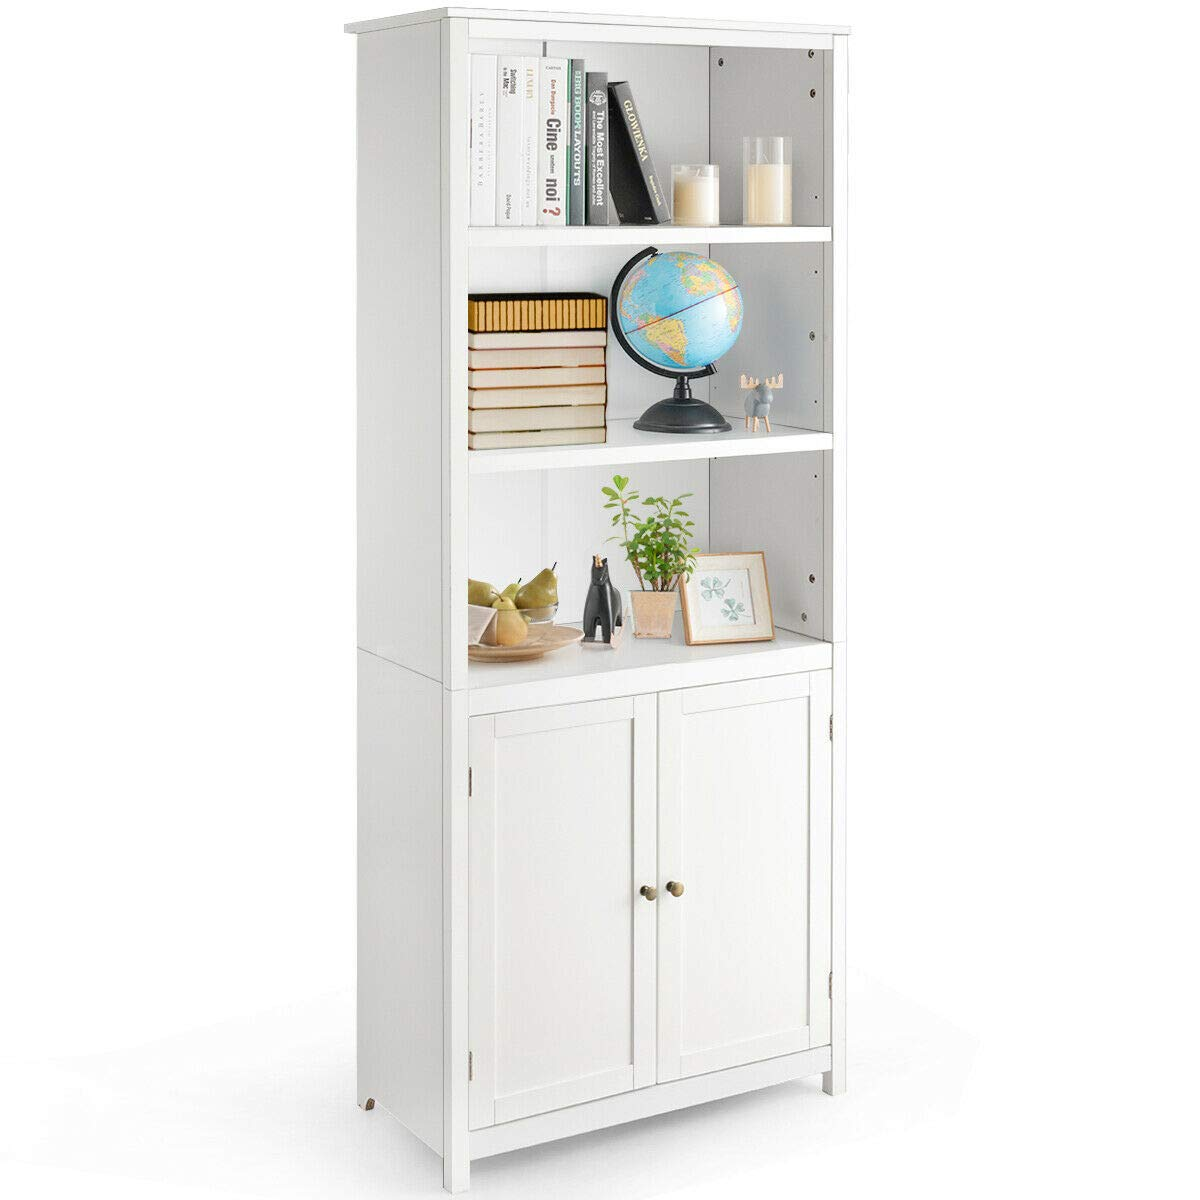 Tangkula Bookcase with Doors, 3 Tier Open Book Shelving, Standing Wooden Display Bookcase with Double Doors, Ideal for Home Bedroom, Living Room, Office, Library with Doors, White Finish (White) by Tangkula